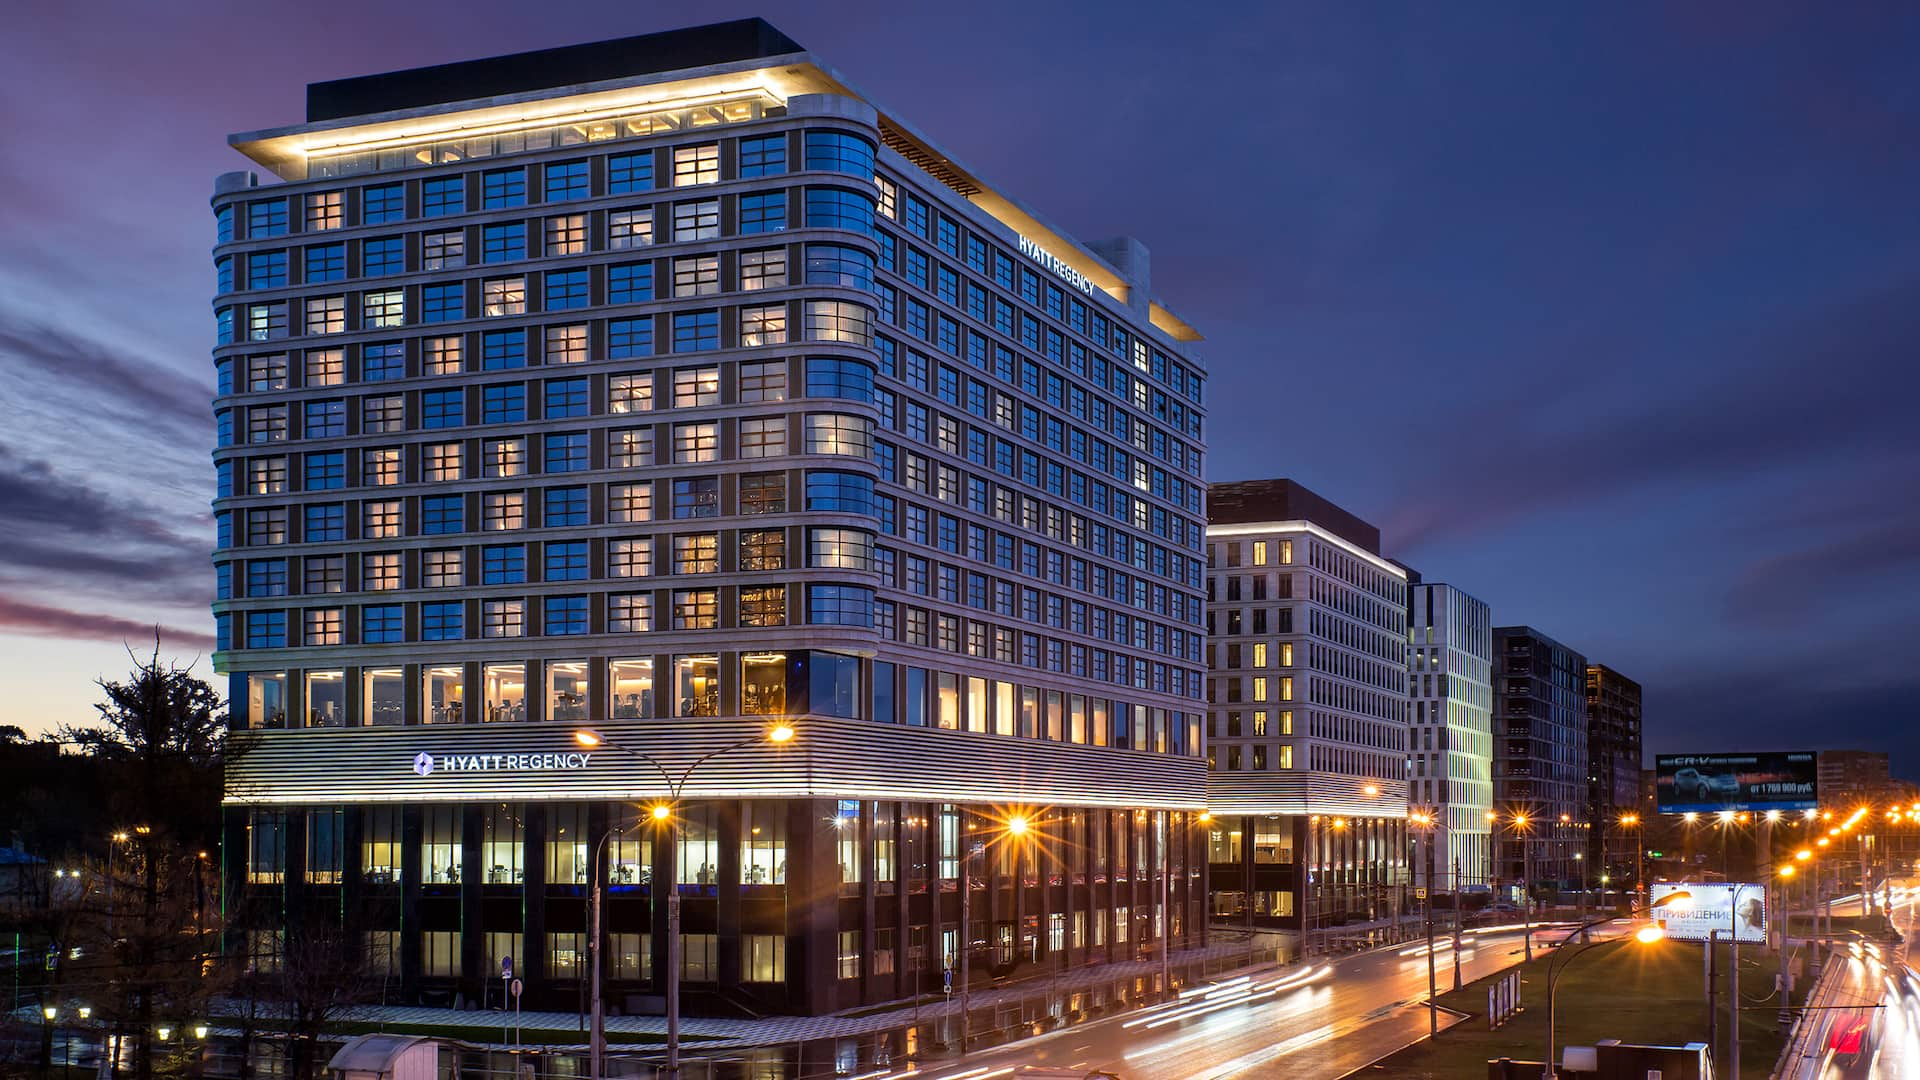 Premium Hyatt Regency Moscow Petrovsky Park located at Leningradsky Avenue near Dynamo metro station